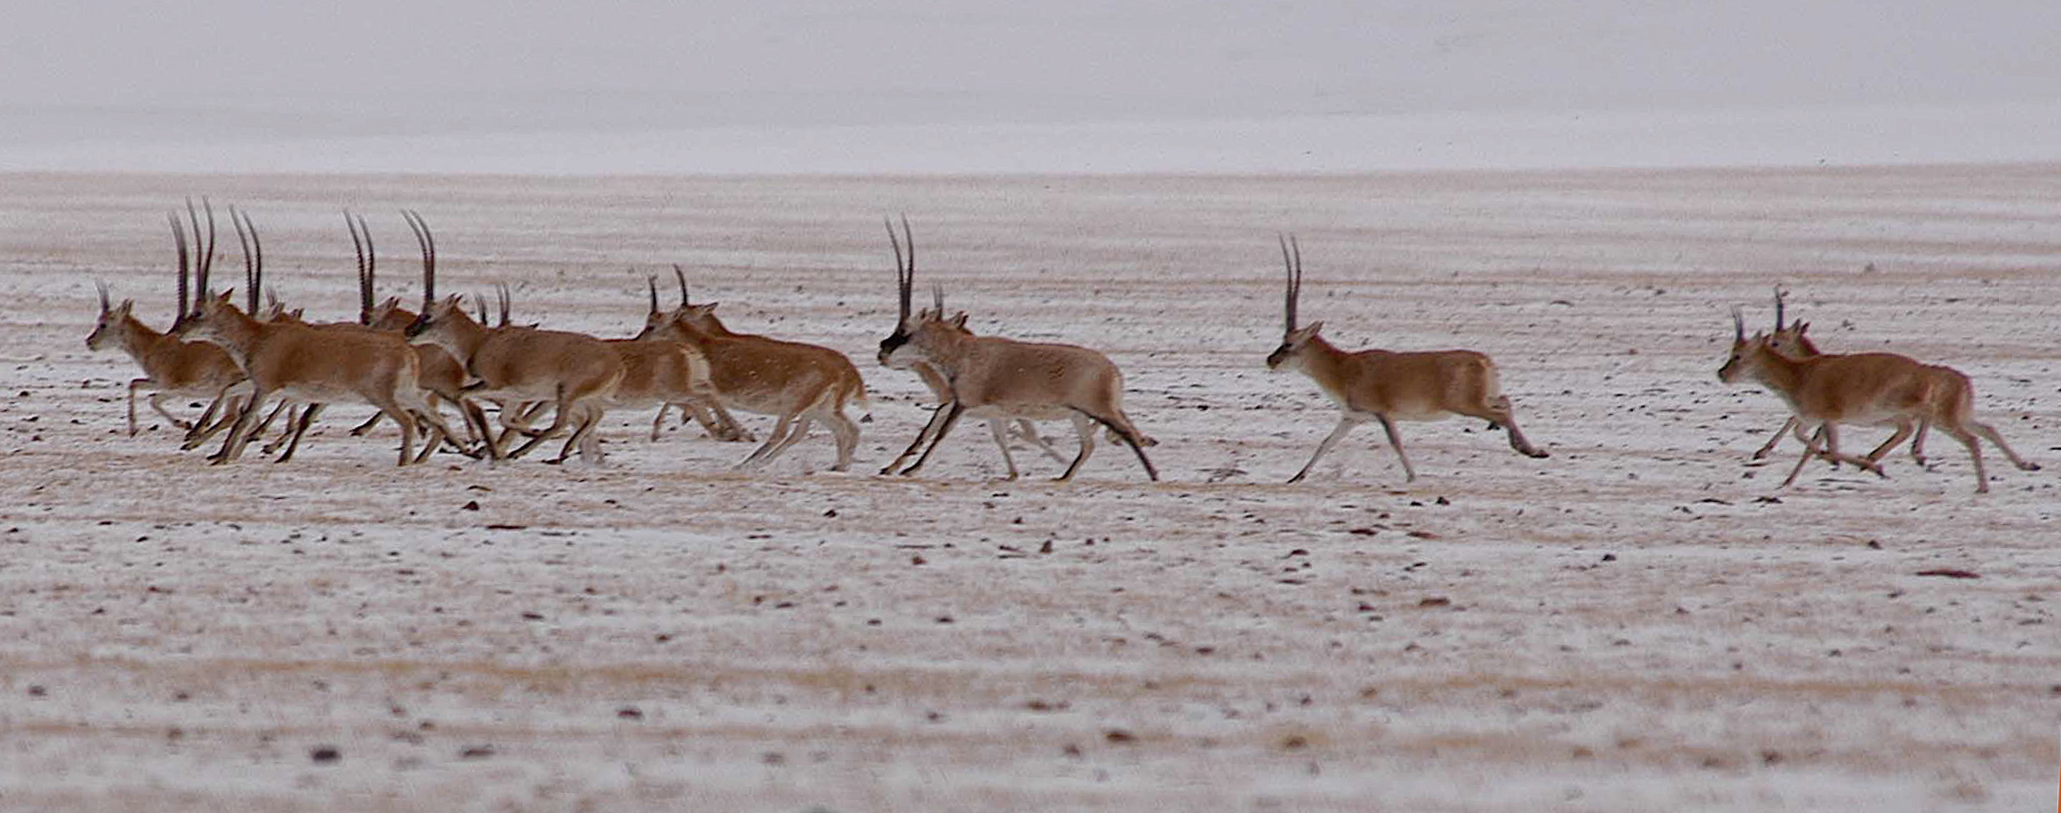 Male Tibetan antelopes race across frozen ground in winter in Tibet.